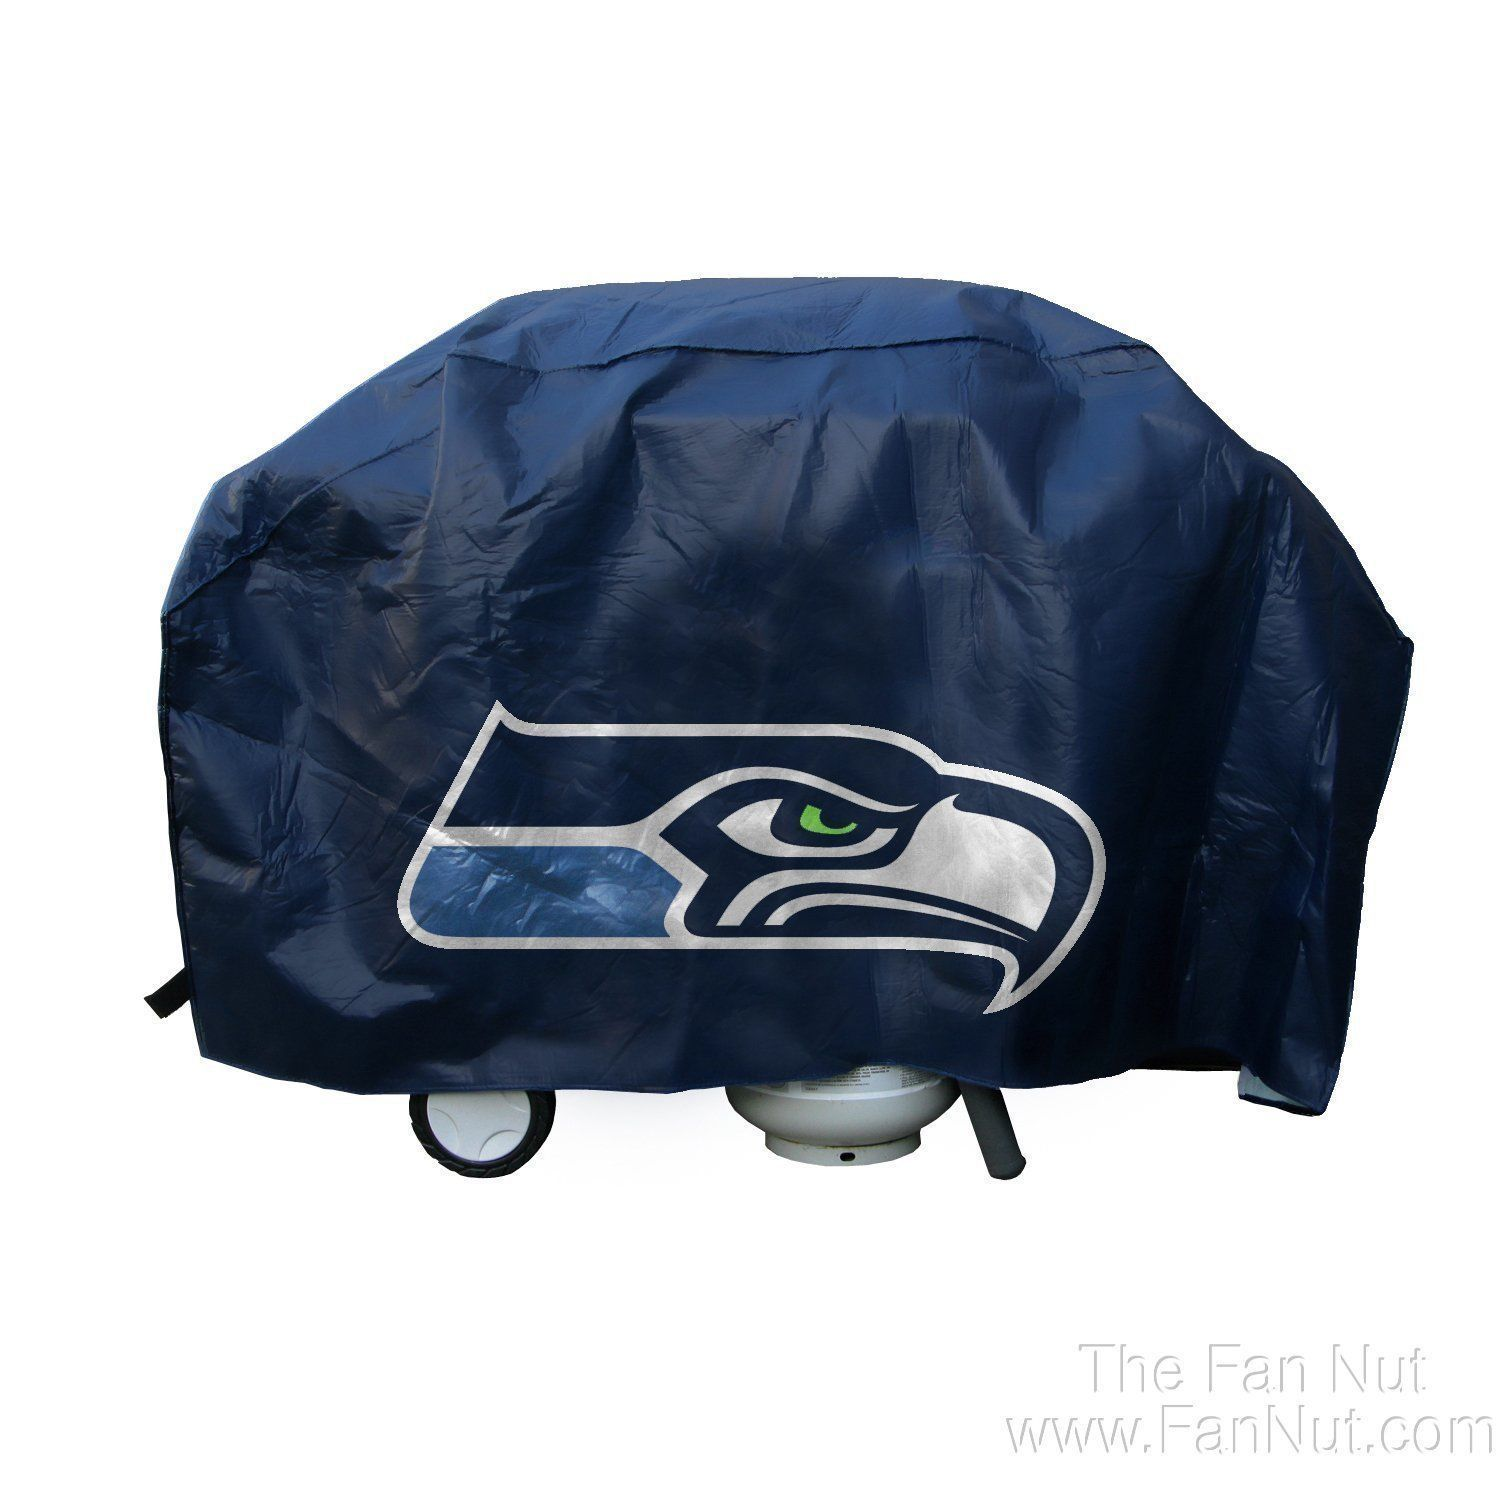 SEATTLE SEAHAWKS ECONOMY BARBEQUE BBQ GRILL COVER NFL FOOTBALL